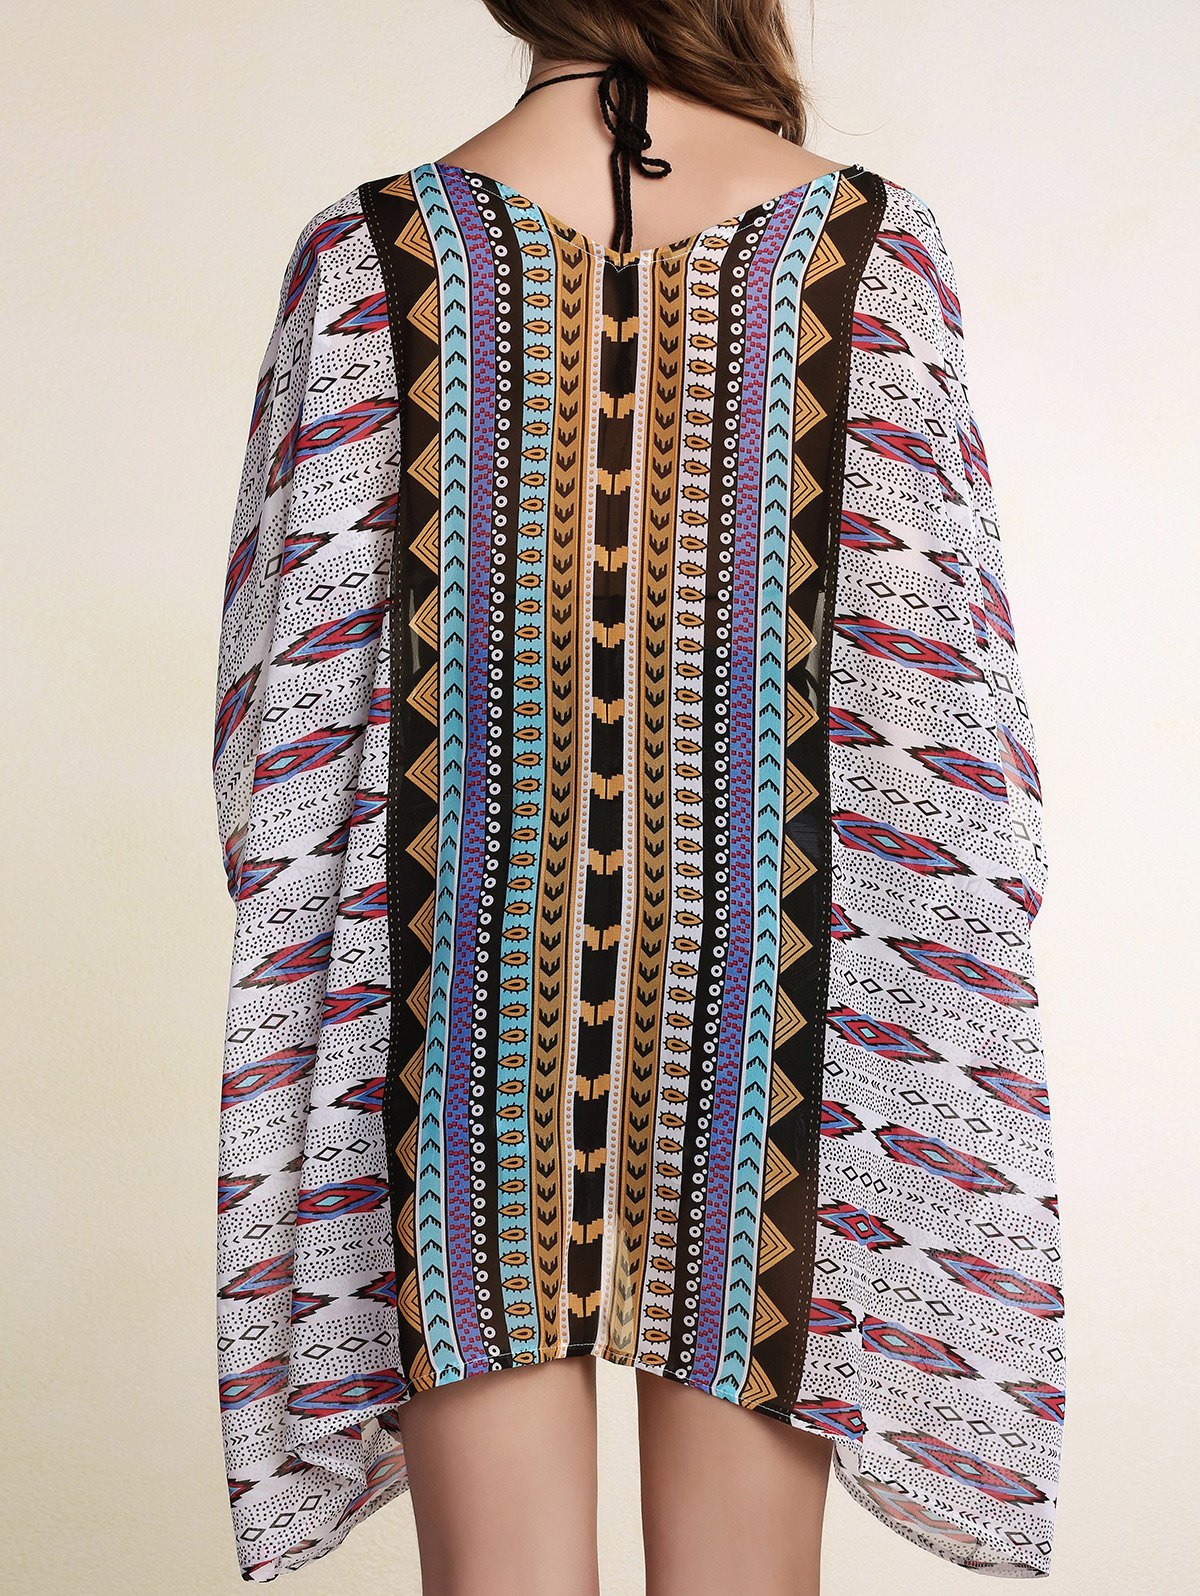 Batwing Sleeve Printed Cover Up